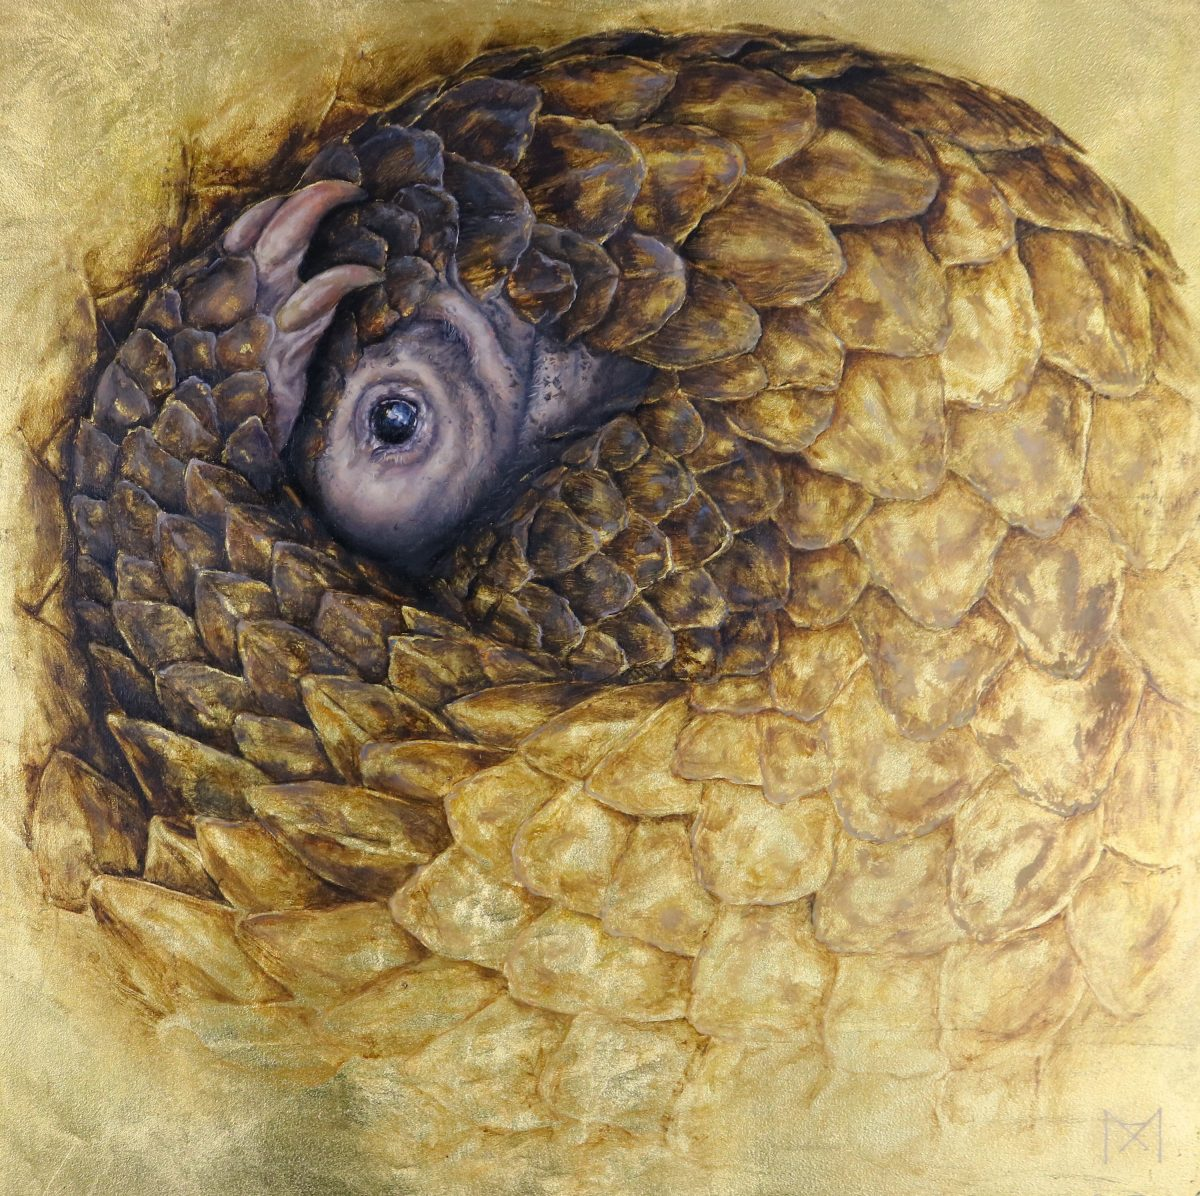 oil painting of a curled up pangolin with gold leaf detailing